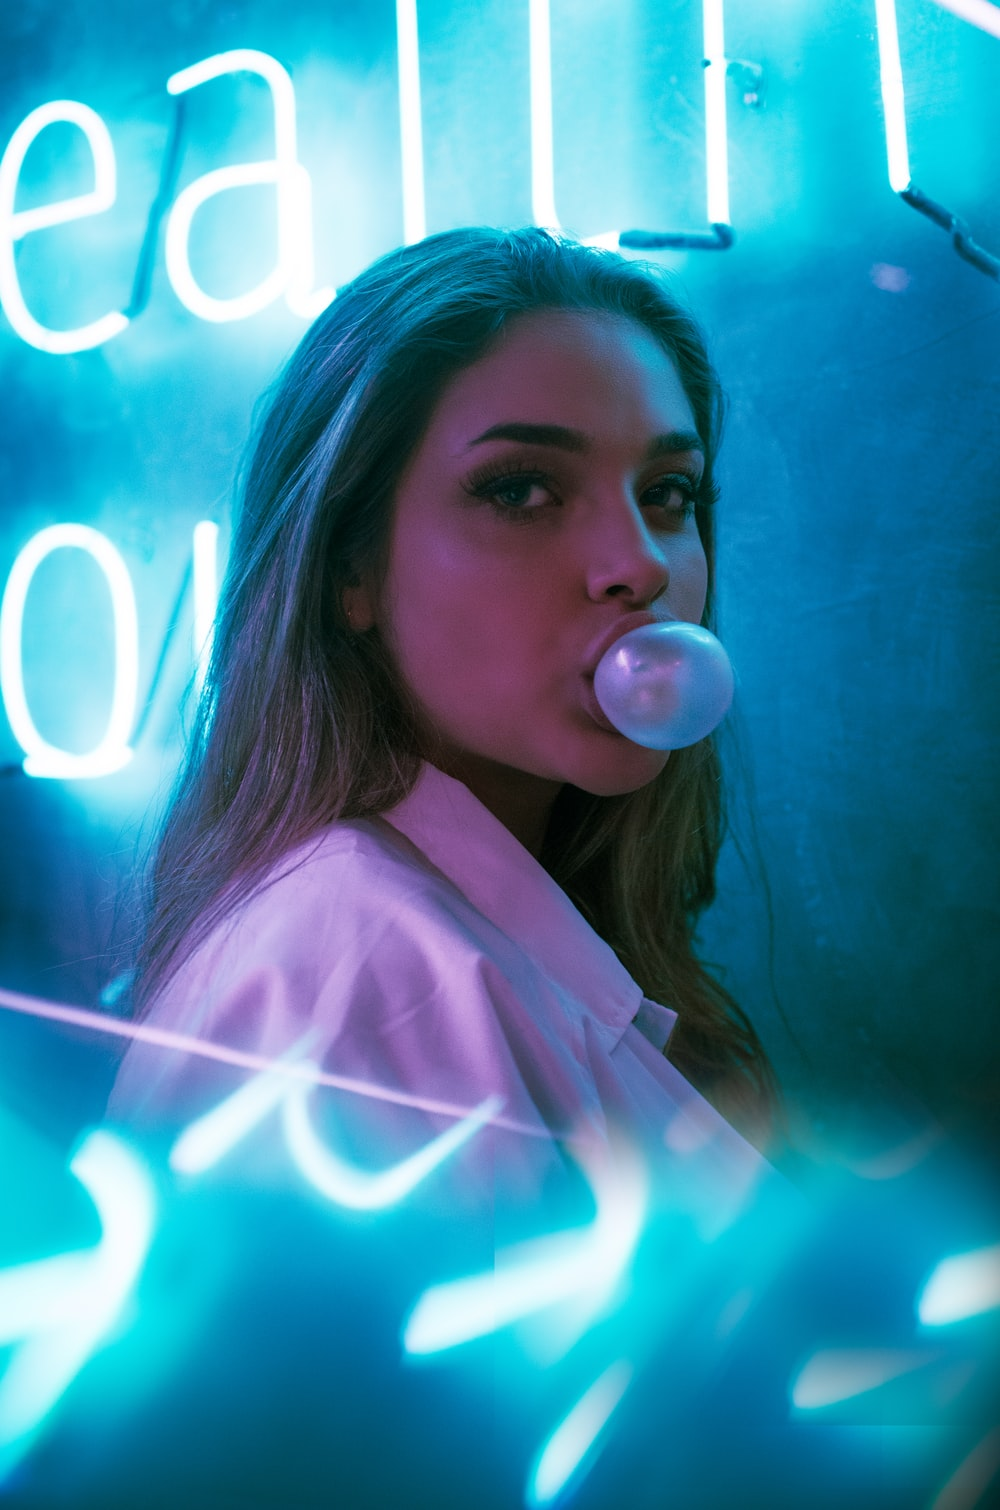 selective focus photo of woman blowing gum standing in front of turned-on neon signage